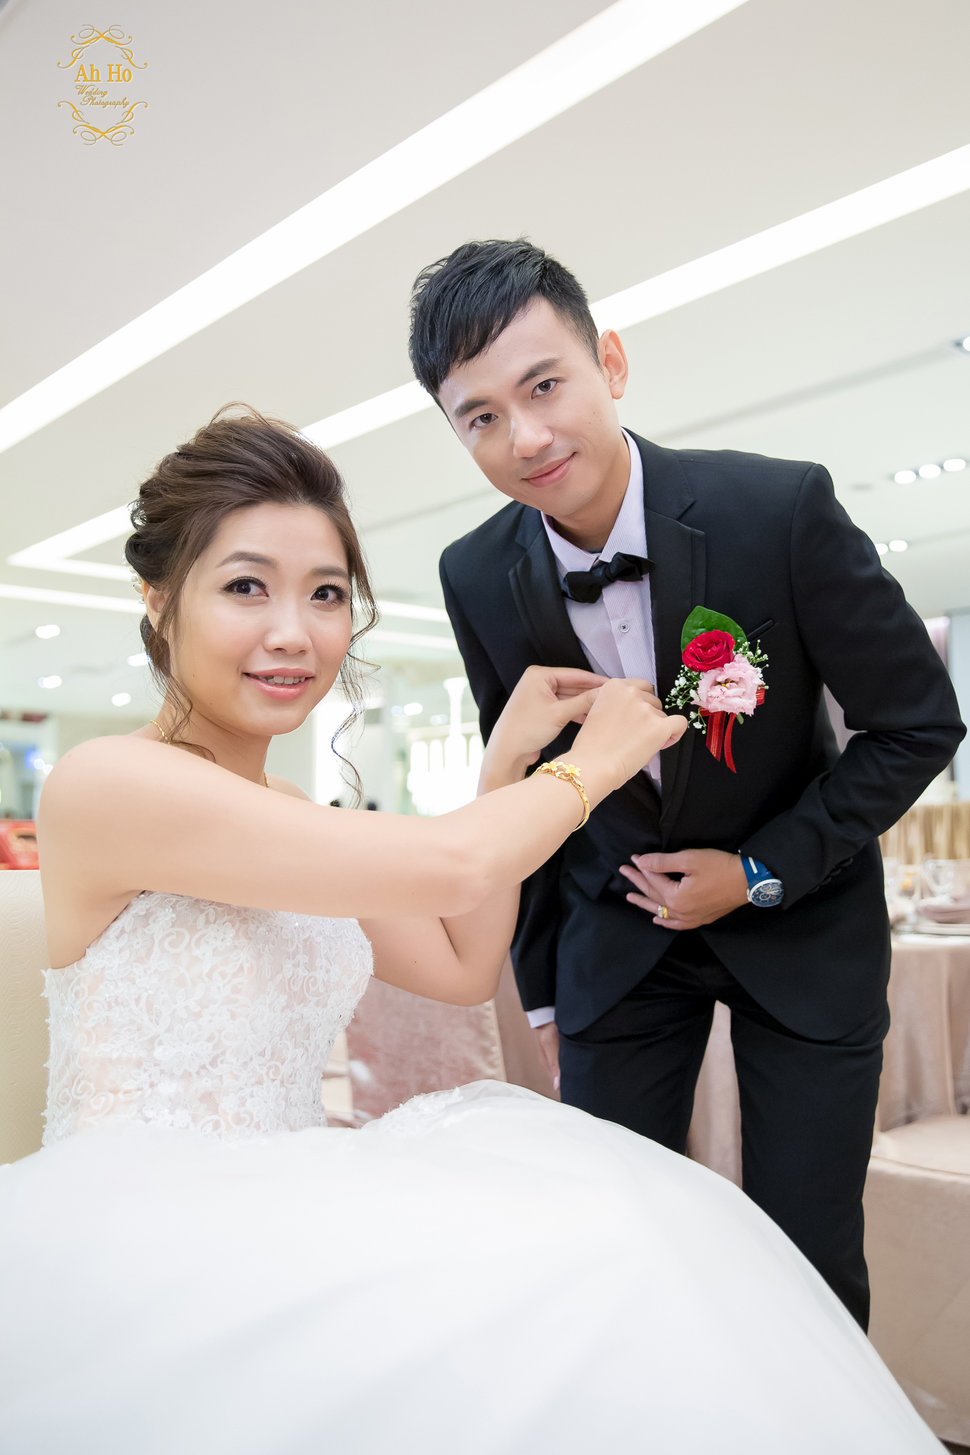 AhHo Wedding TEL-0937797161 lineID-chiupeiho (81 - 411) - AhHoWedding/阿河婚攝《結婚吧》